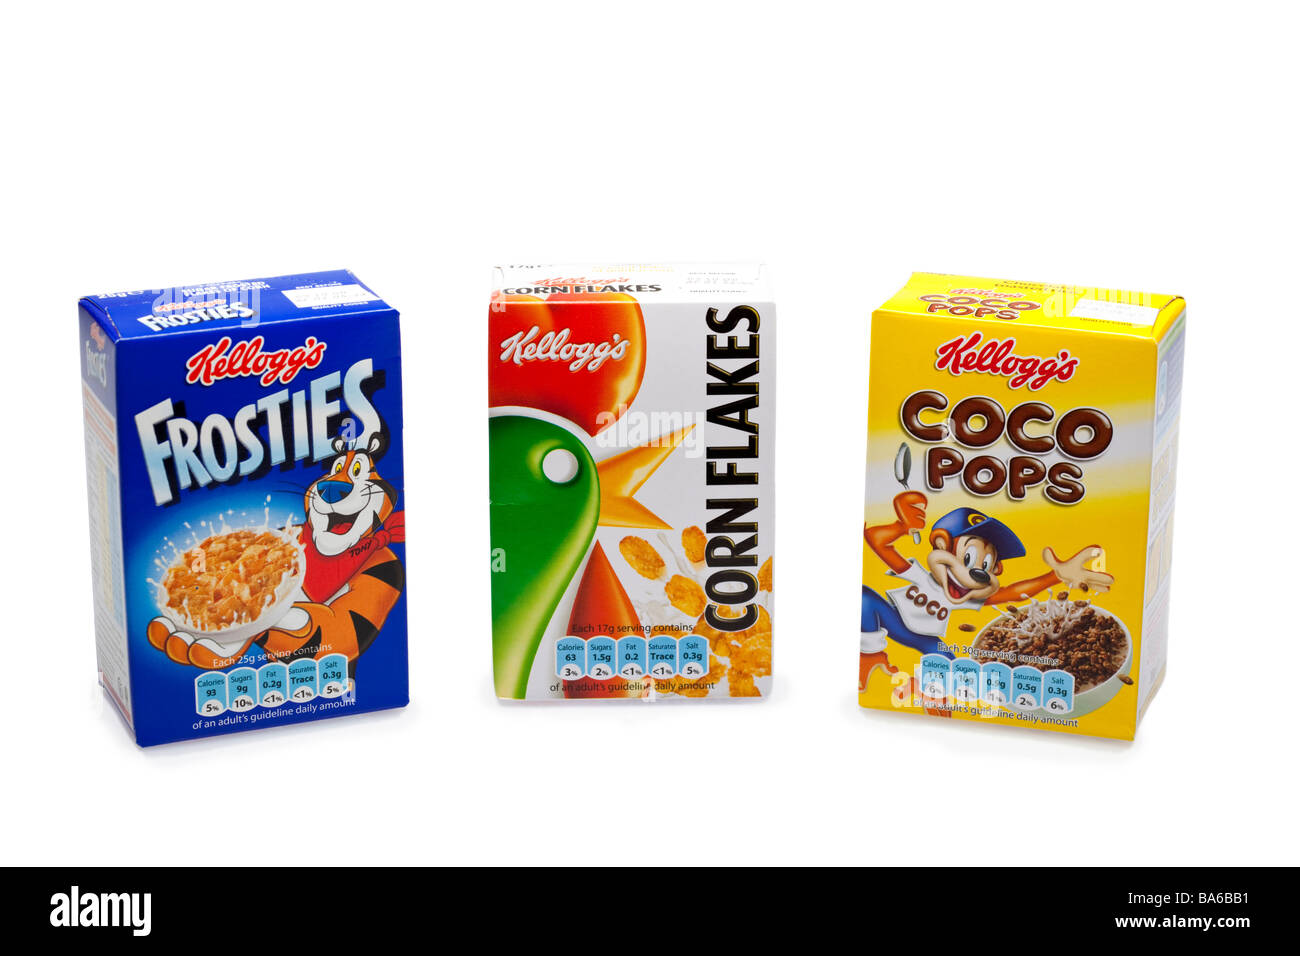 Kellogs breakfast cereal boxes on white UK was B84A92 - Stock Image